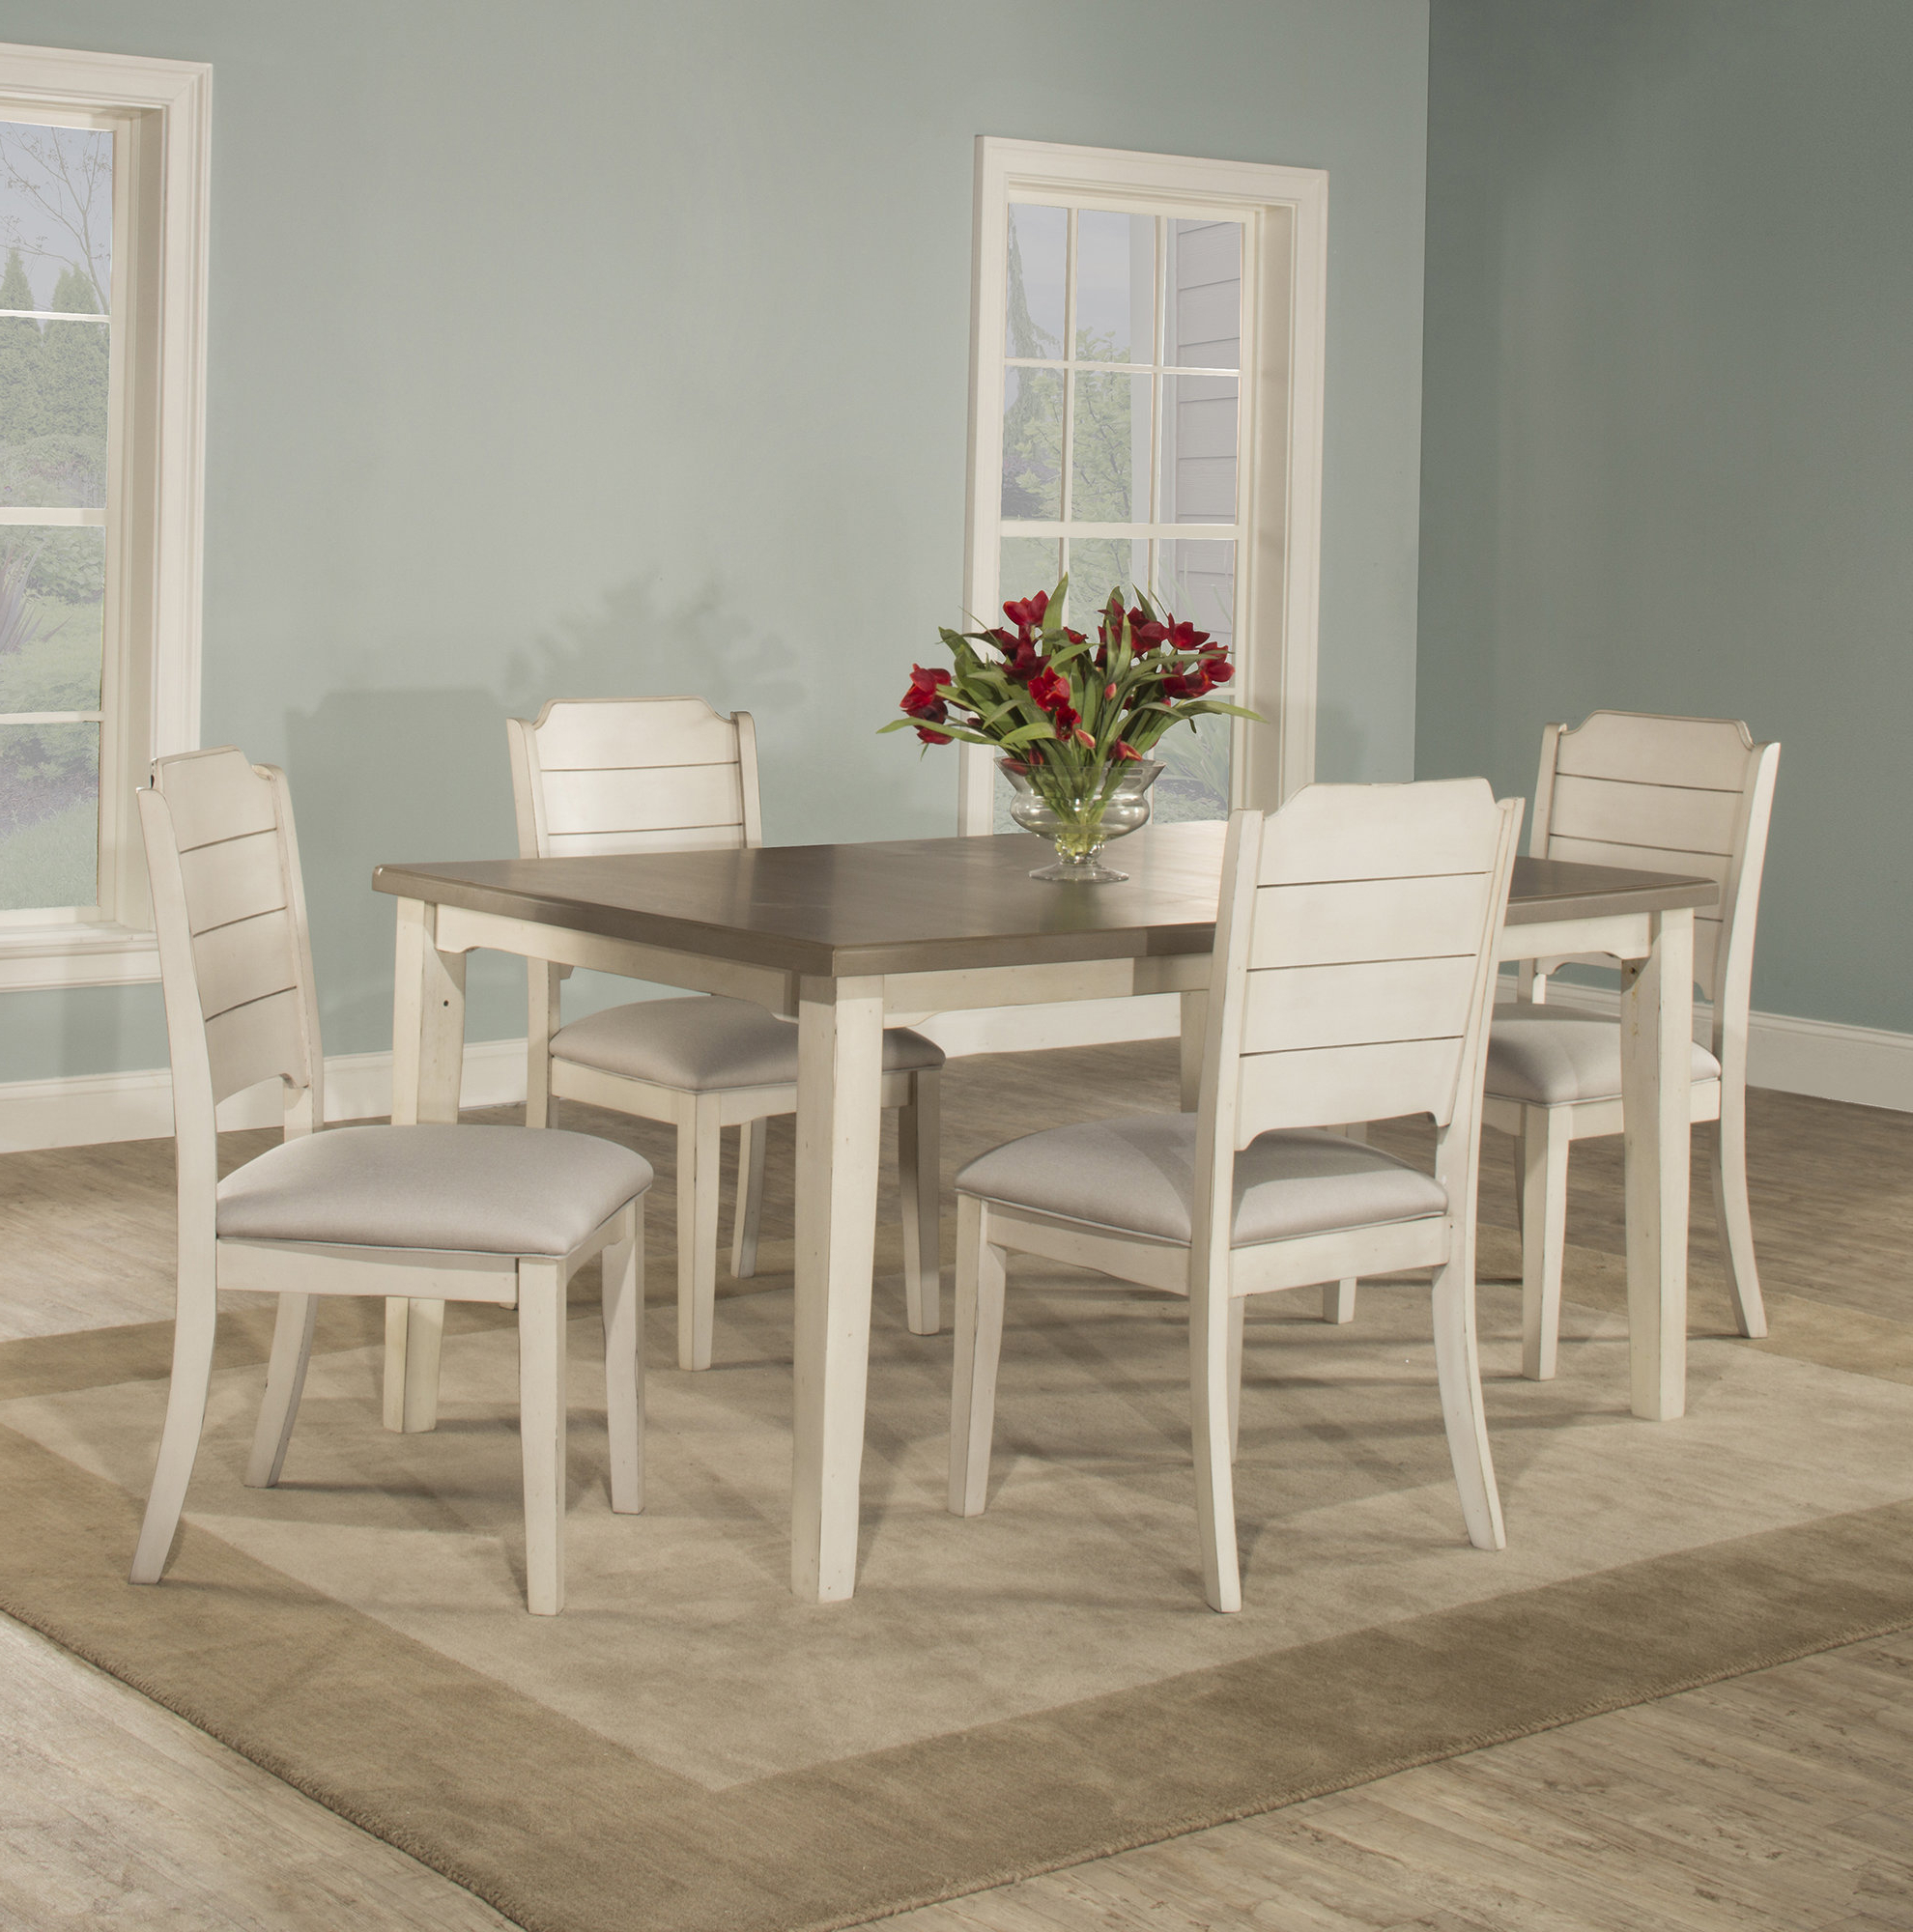 2017 Rosecliff Heights Kinsey 5 Piece Dining Set With Regard To Nutter 3 Piece Dining Sets (View 19 of 20)